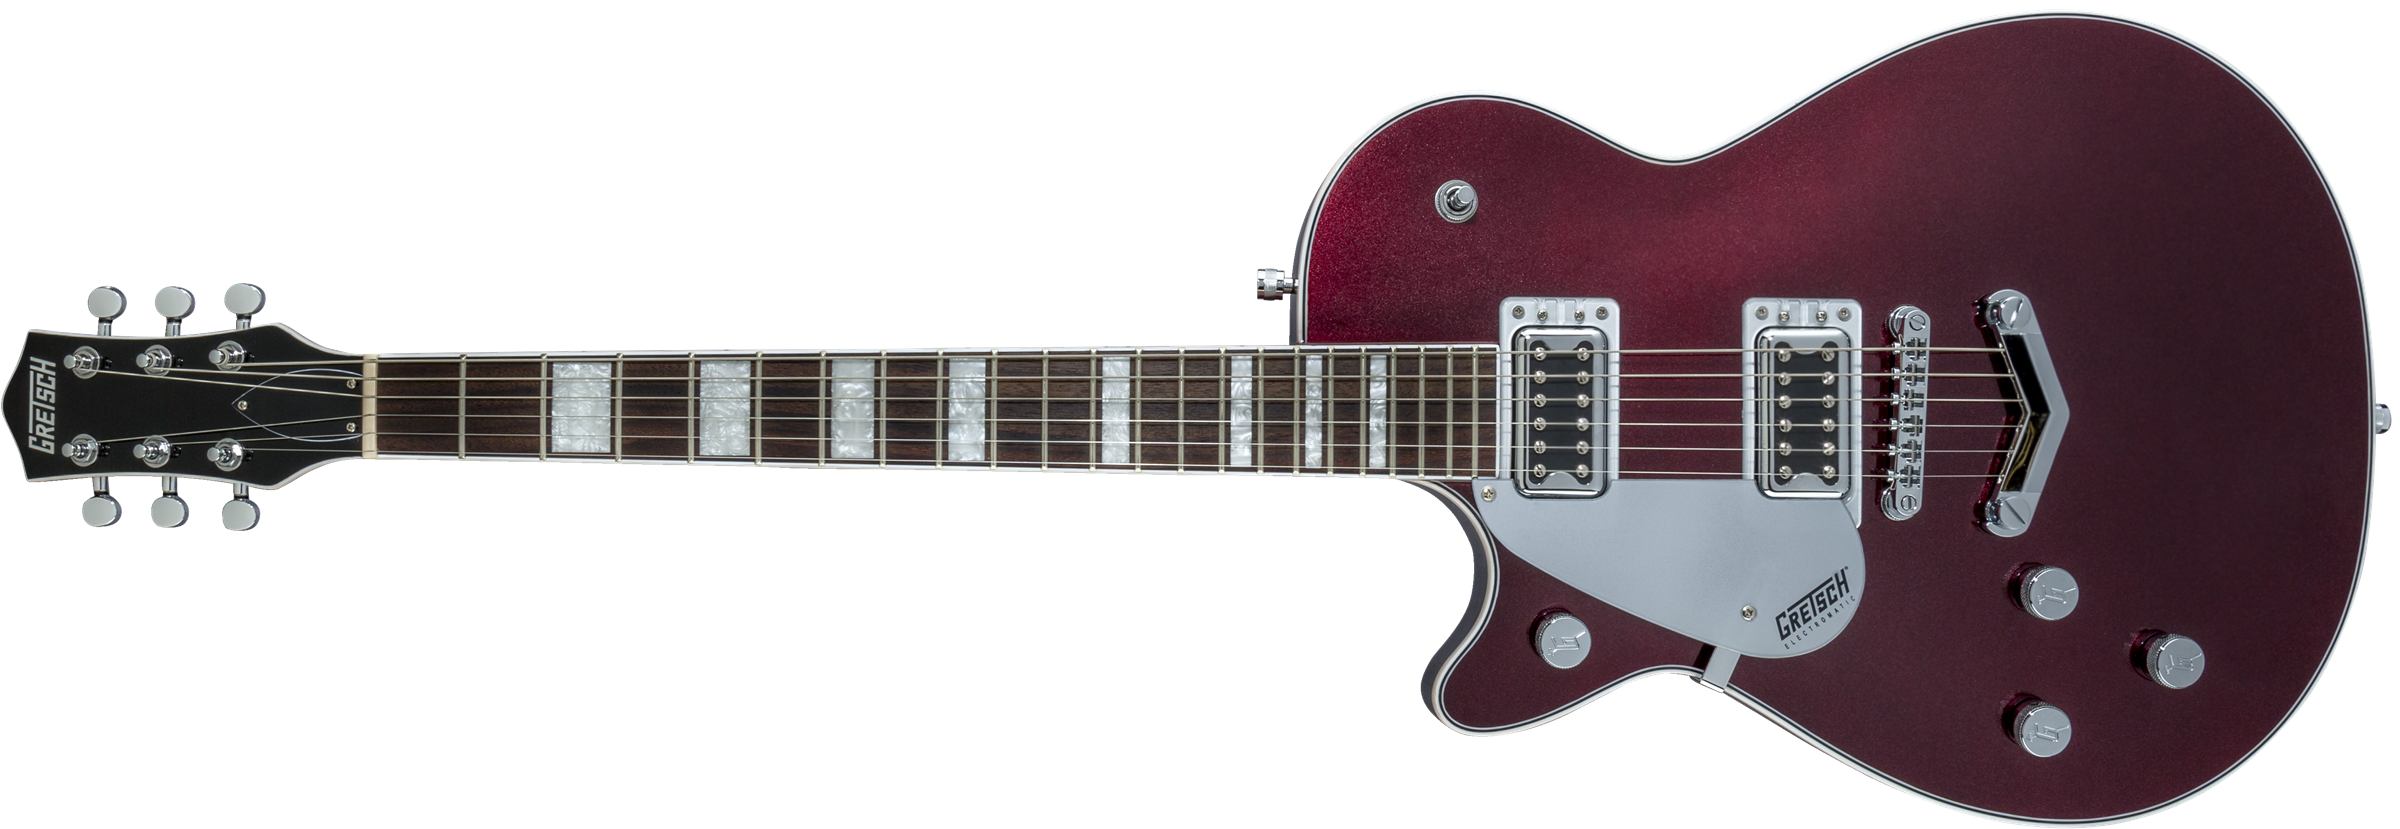 GRETSCH G5220LH Electromatic Jet BT Single-Cut with V-Stoptail, Left-Handed, Black Walnut Fingerboard, Dark Cherry Metallic